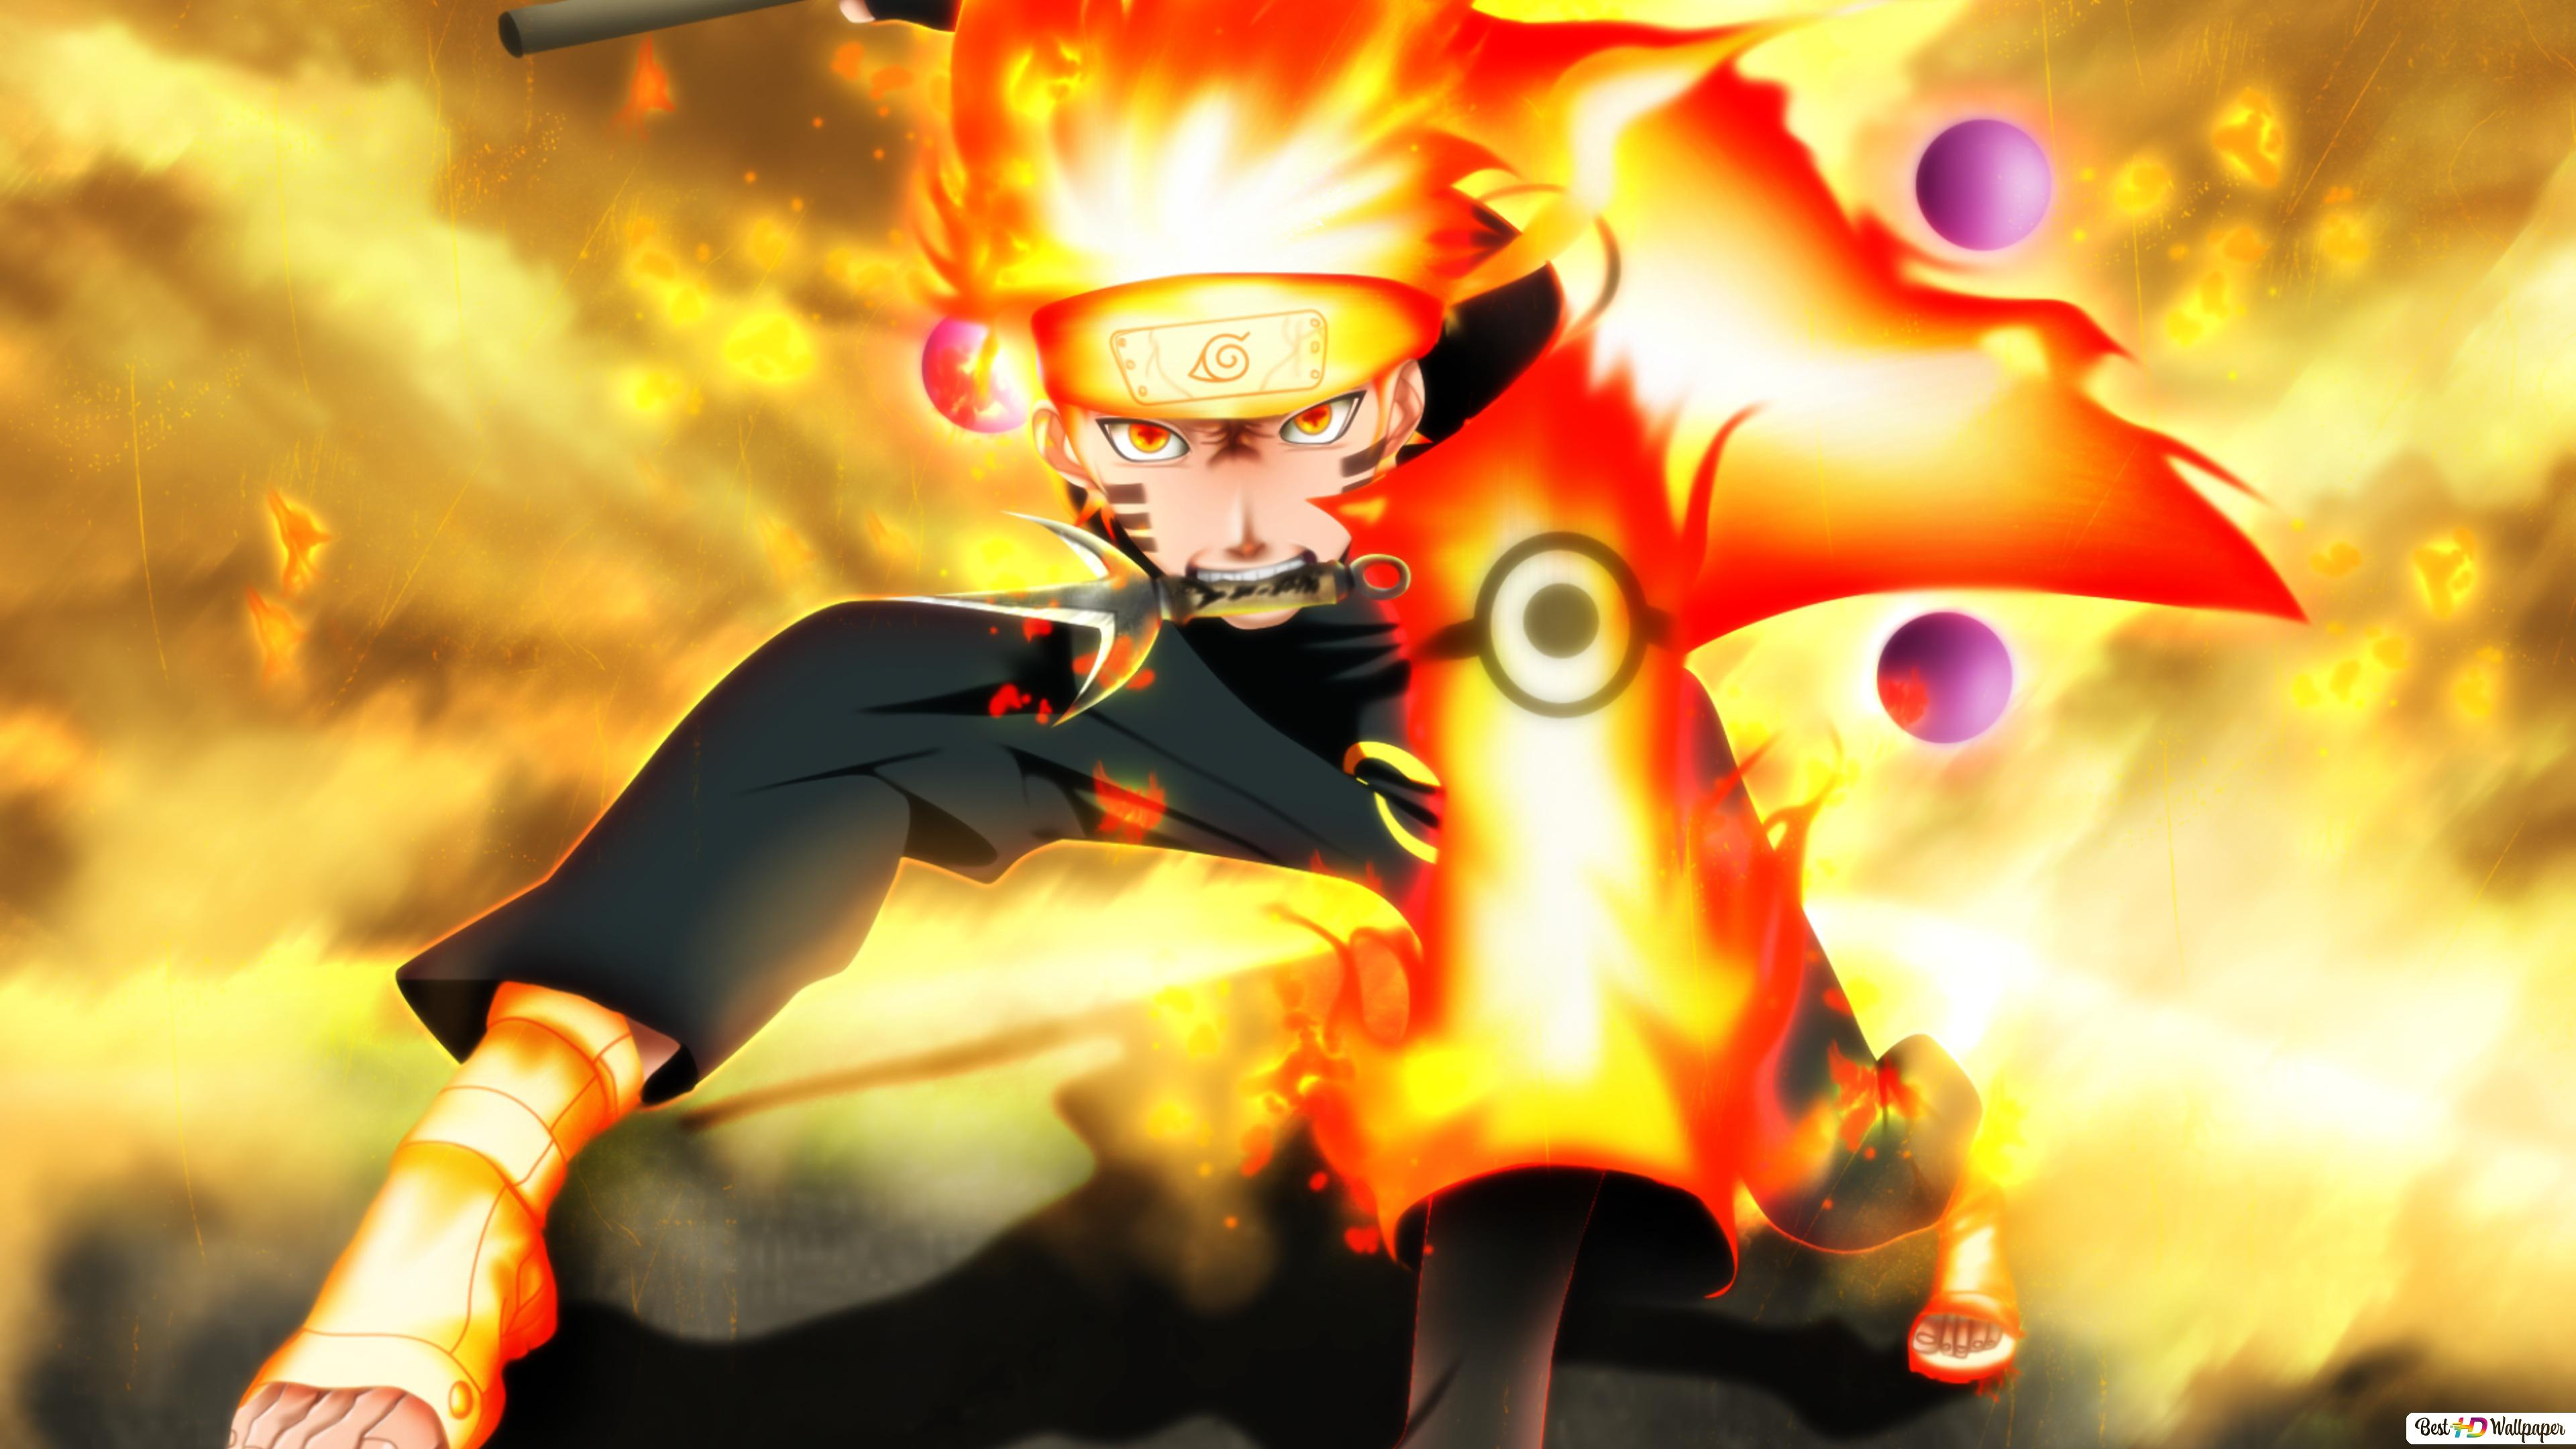 naruto uzumaki sage mode wallpaper 3840x2160 20890 54